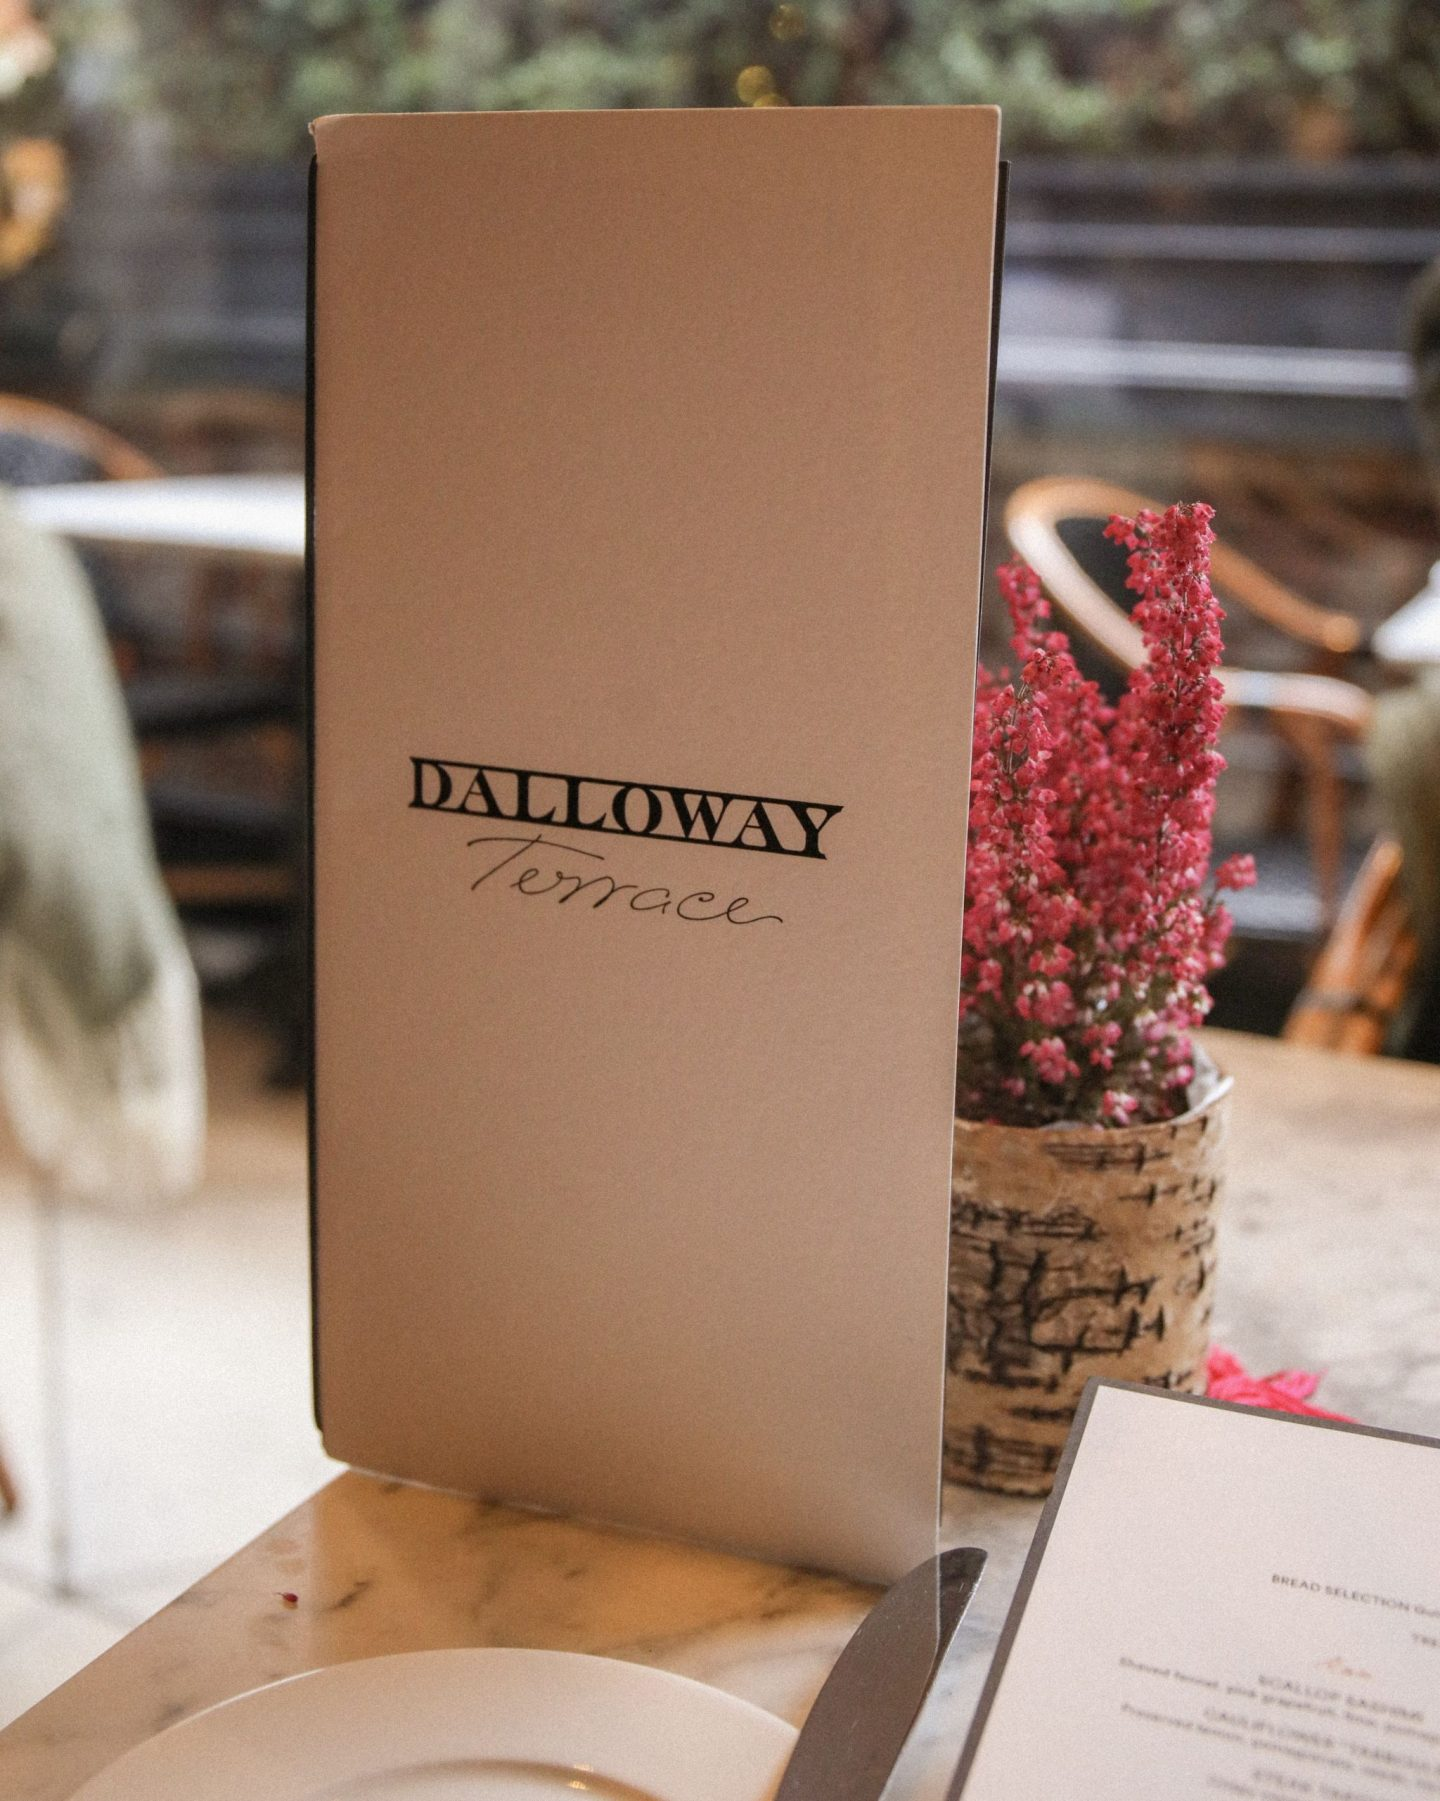 Autumn lunch at Dalloway Terrace, The Bloomsbury Hotel, London, Katie Heath, KALANCHOE